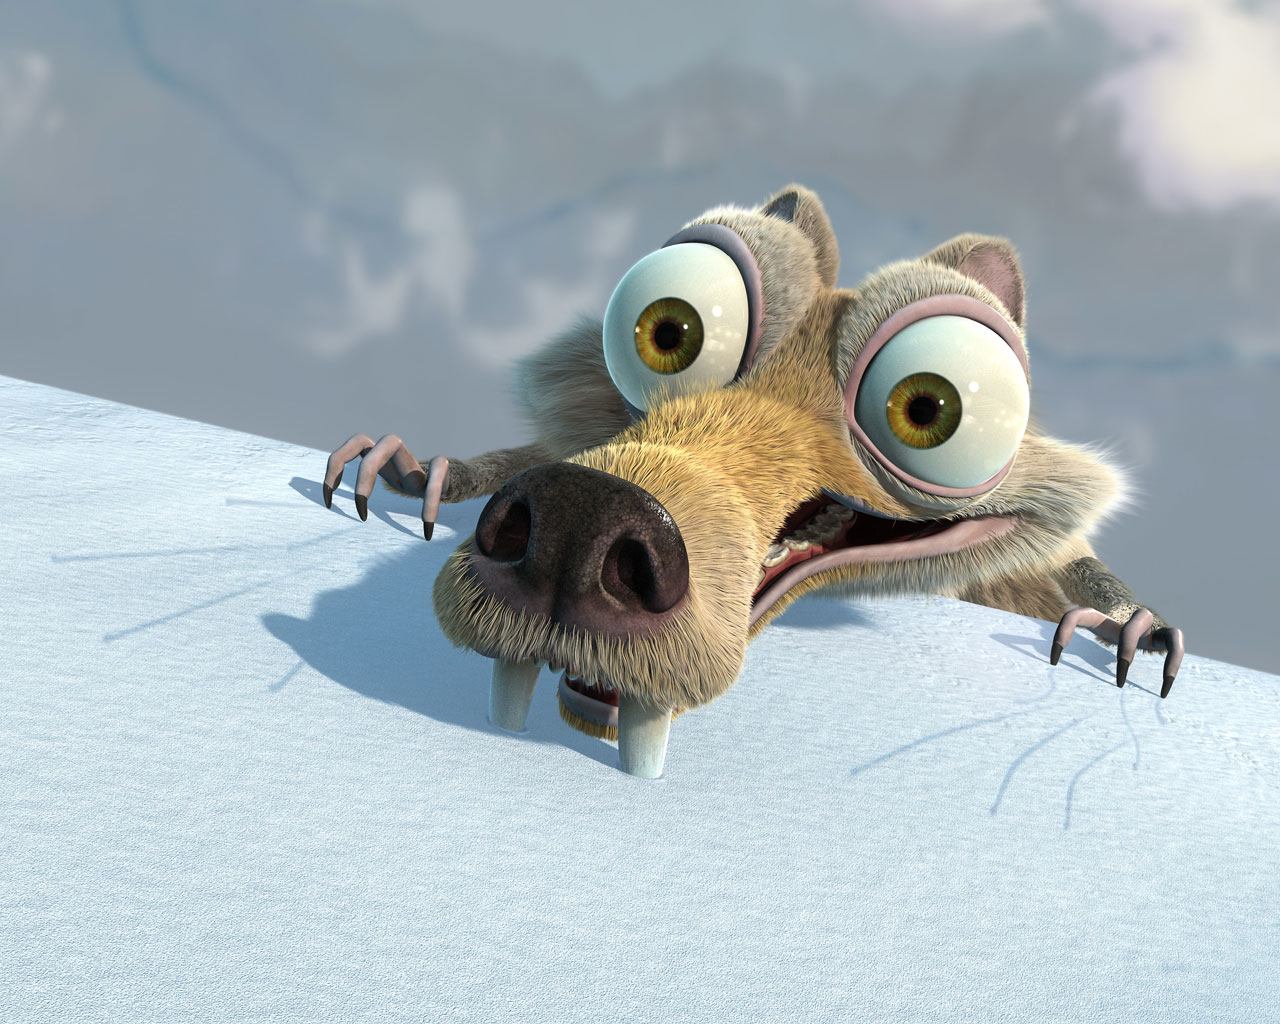 click to free download the wallpaper--TV & Movies Post, Scrat in Ice Age, Teeth Stuck Deep to Stop Falling